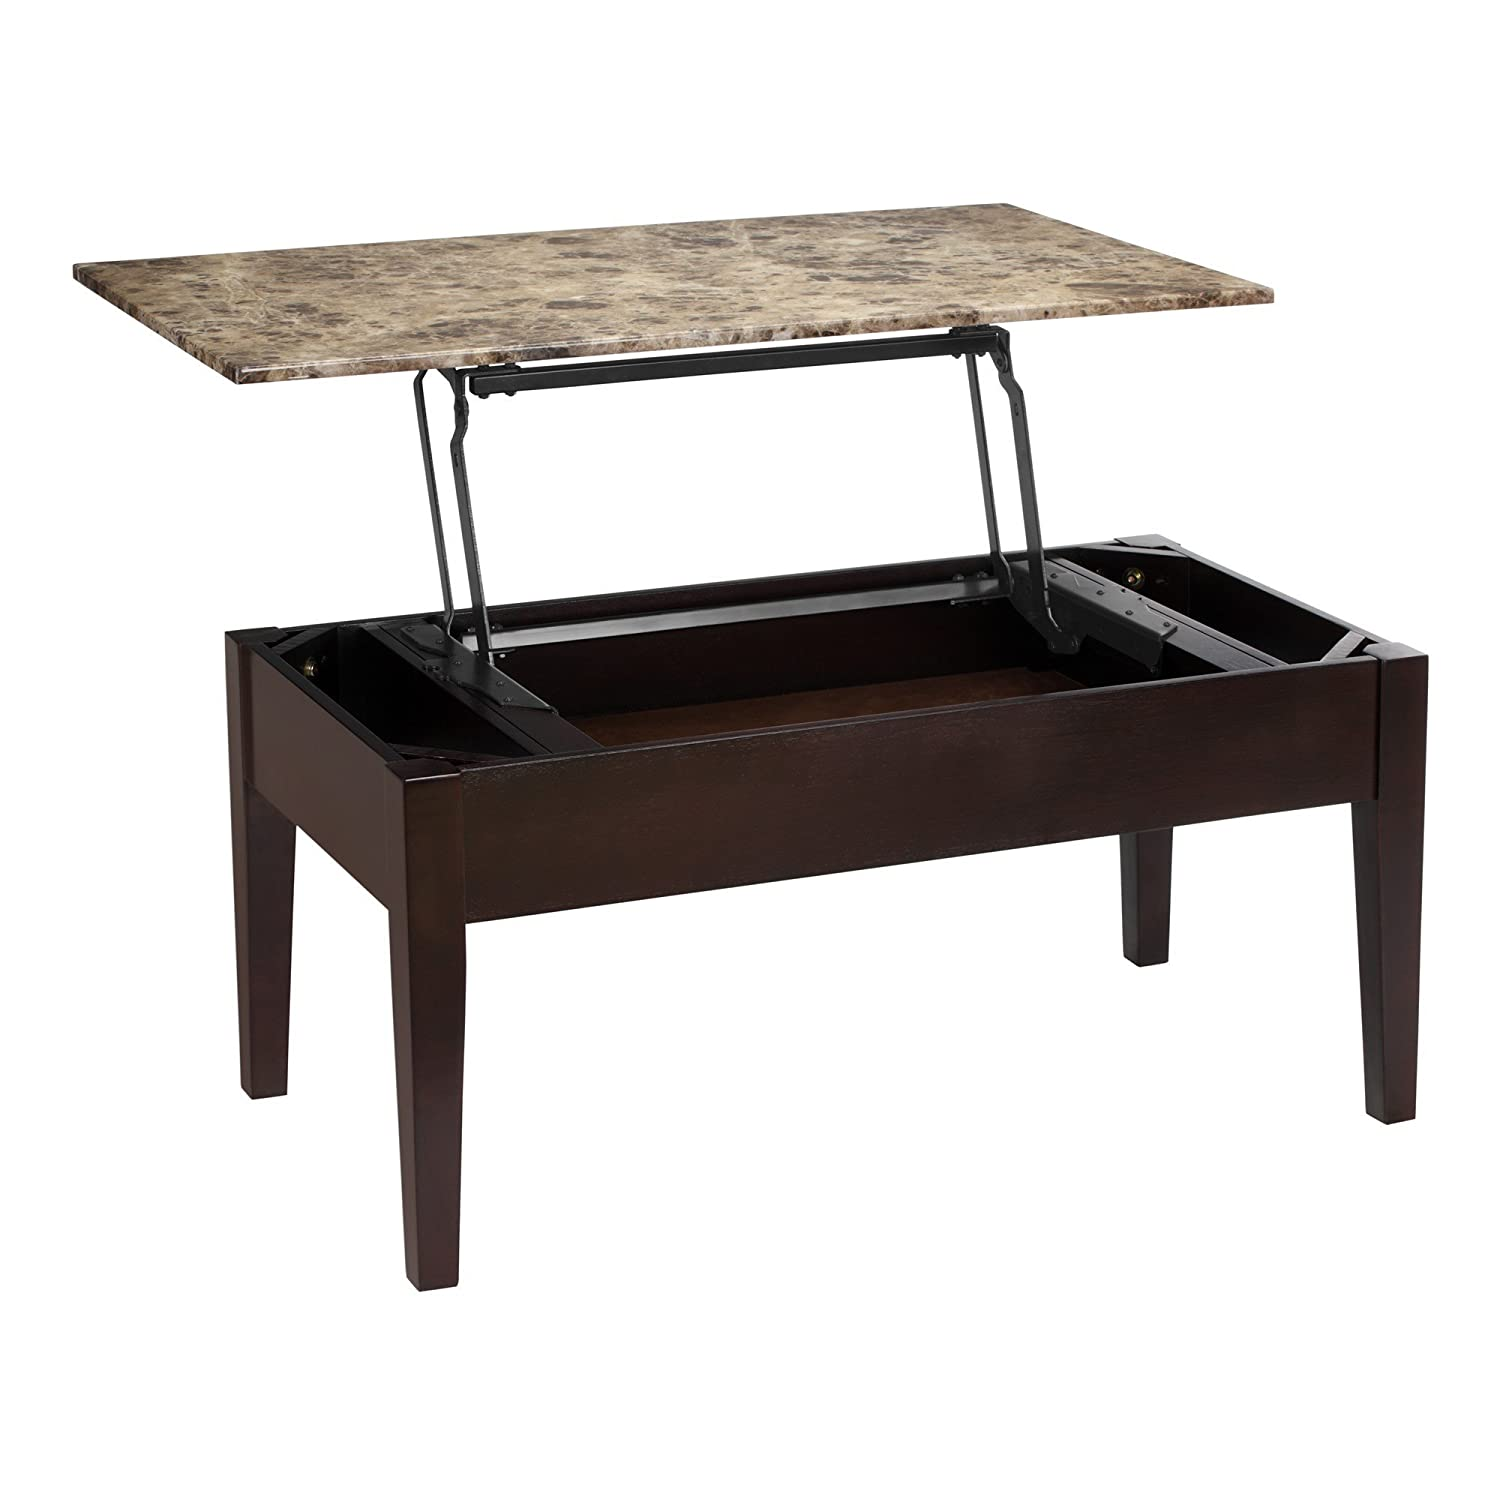 man cave table, life up table,